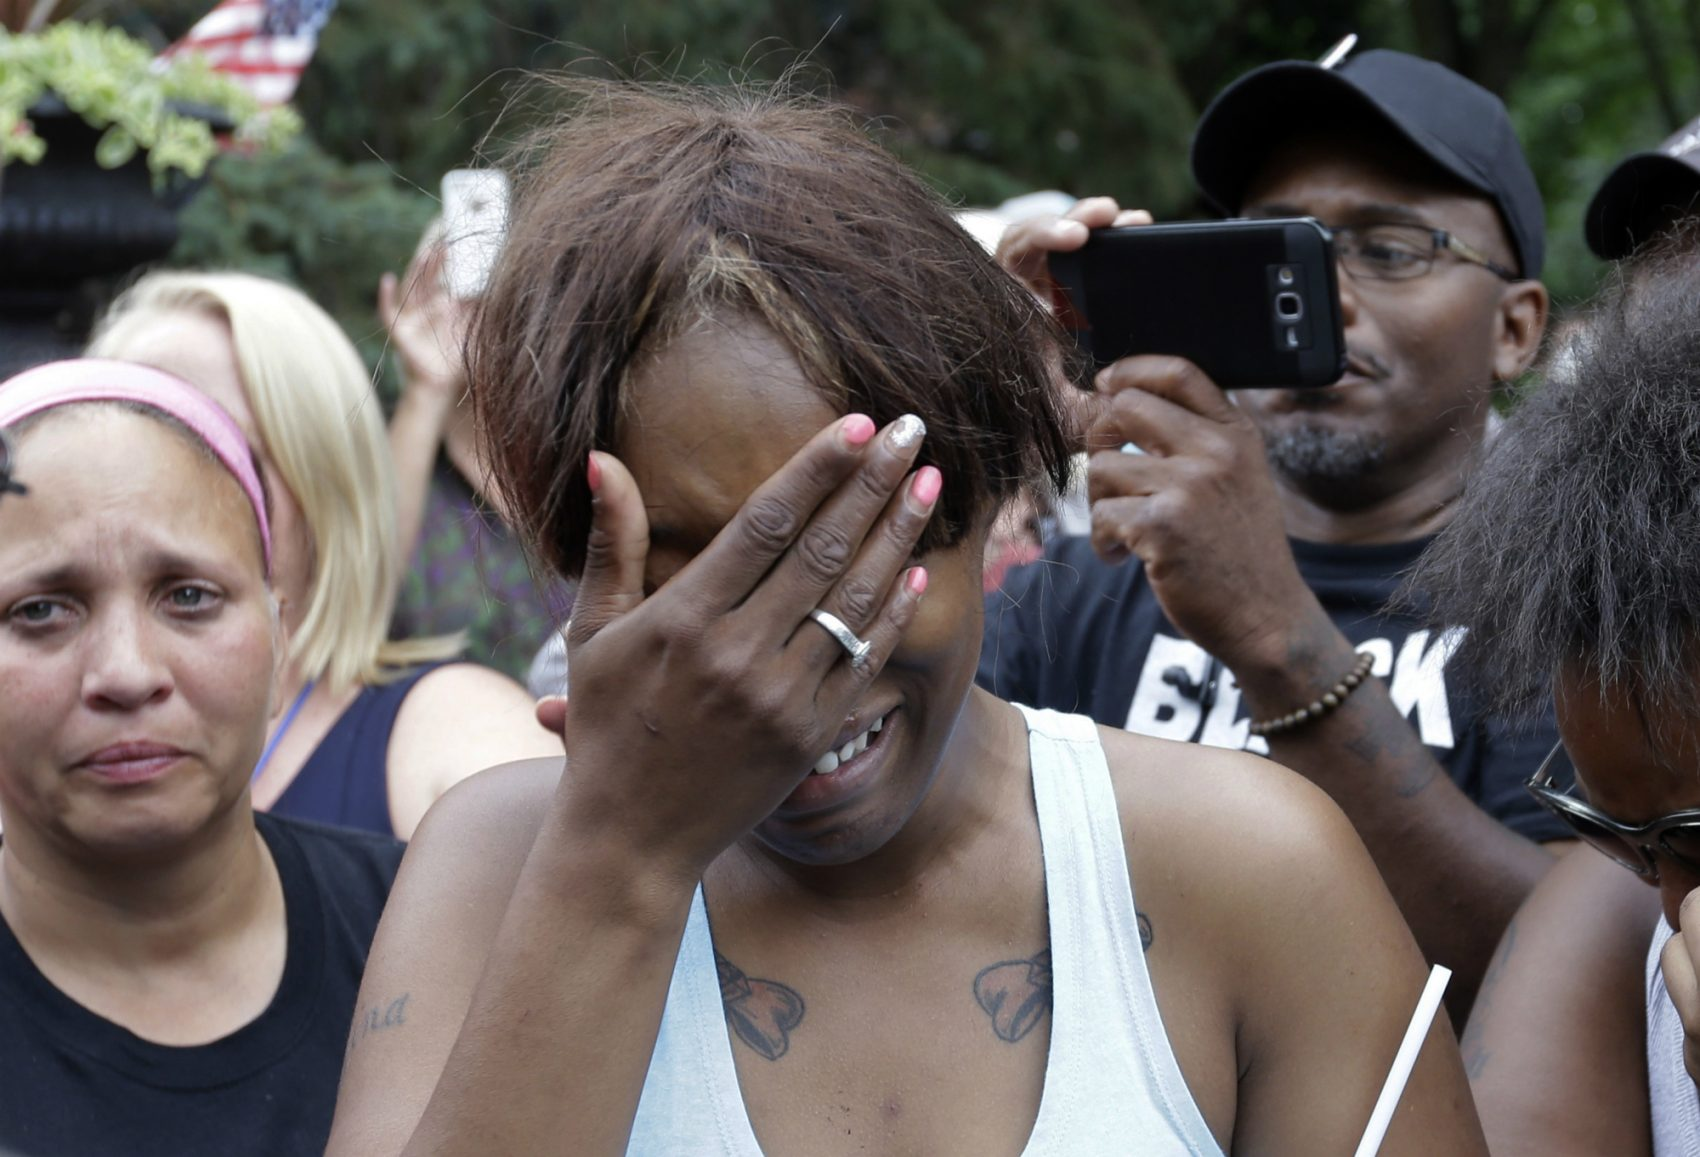 Diamond Reynolds, the girlfriend of Philando Castile, cries outside the governor's residence in St. Paul, Minn., on Thursday, July 7, 2016. Castile was shot and killed after a traffic stop by police in Falcon Heights, Wednesday night. A video shot by Reynolds of the shooting  went viral.  (Jim Mone/AP)